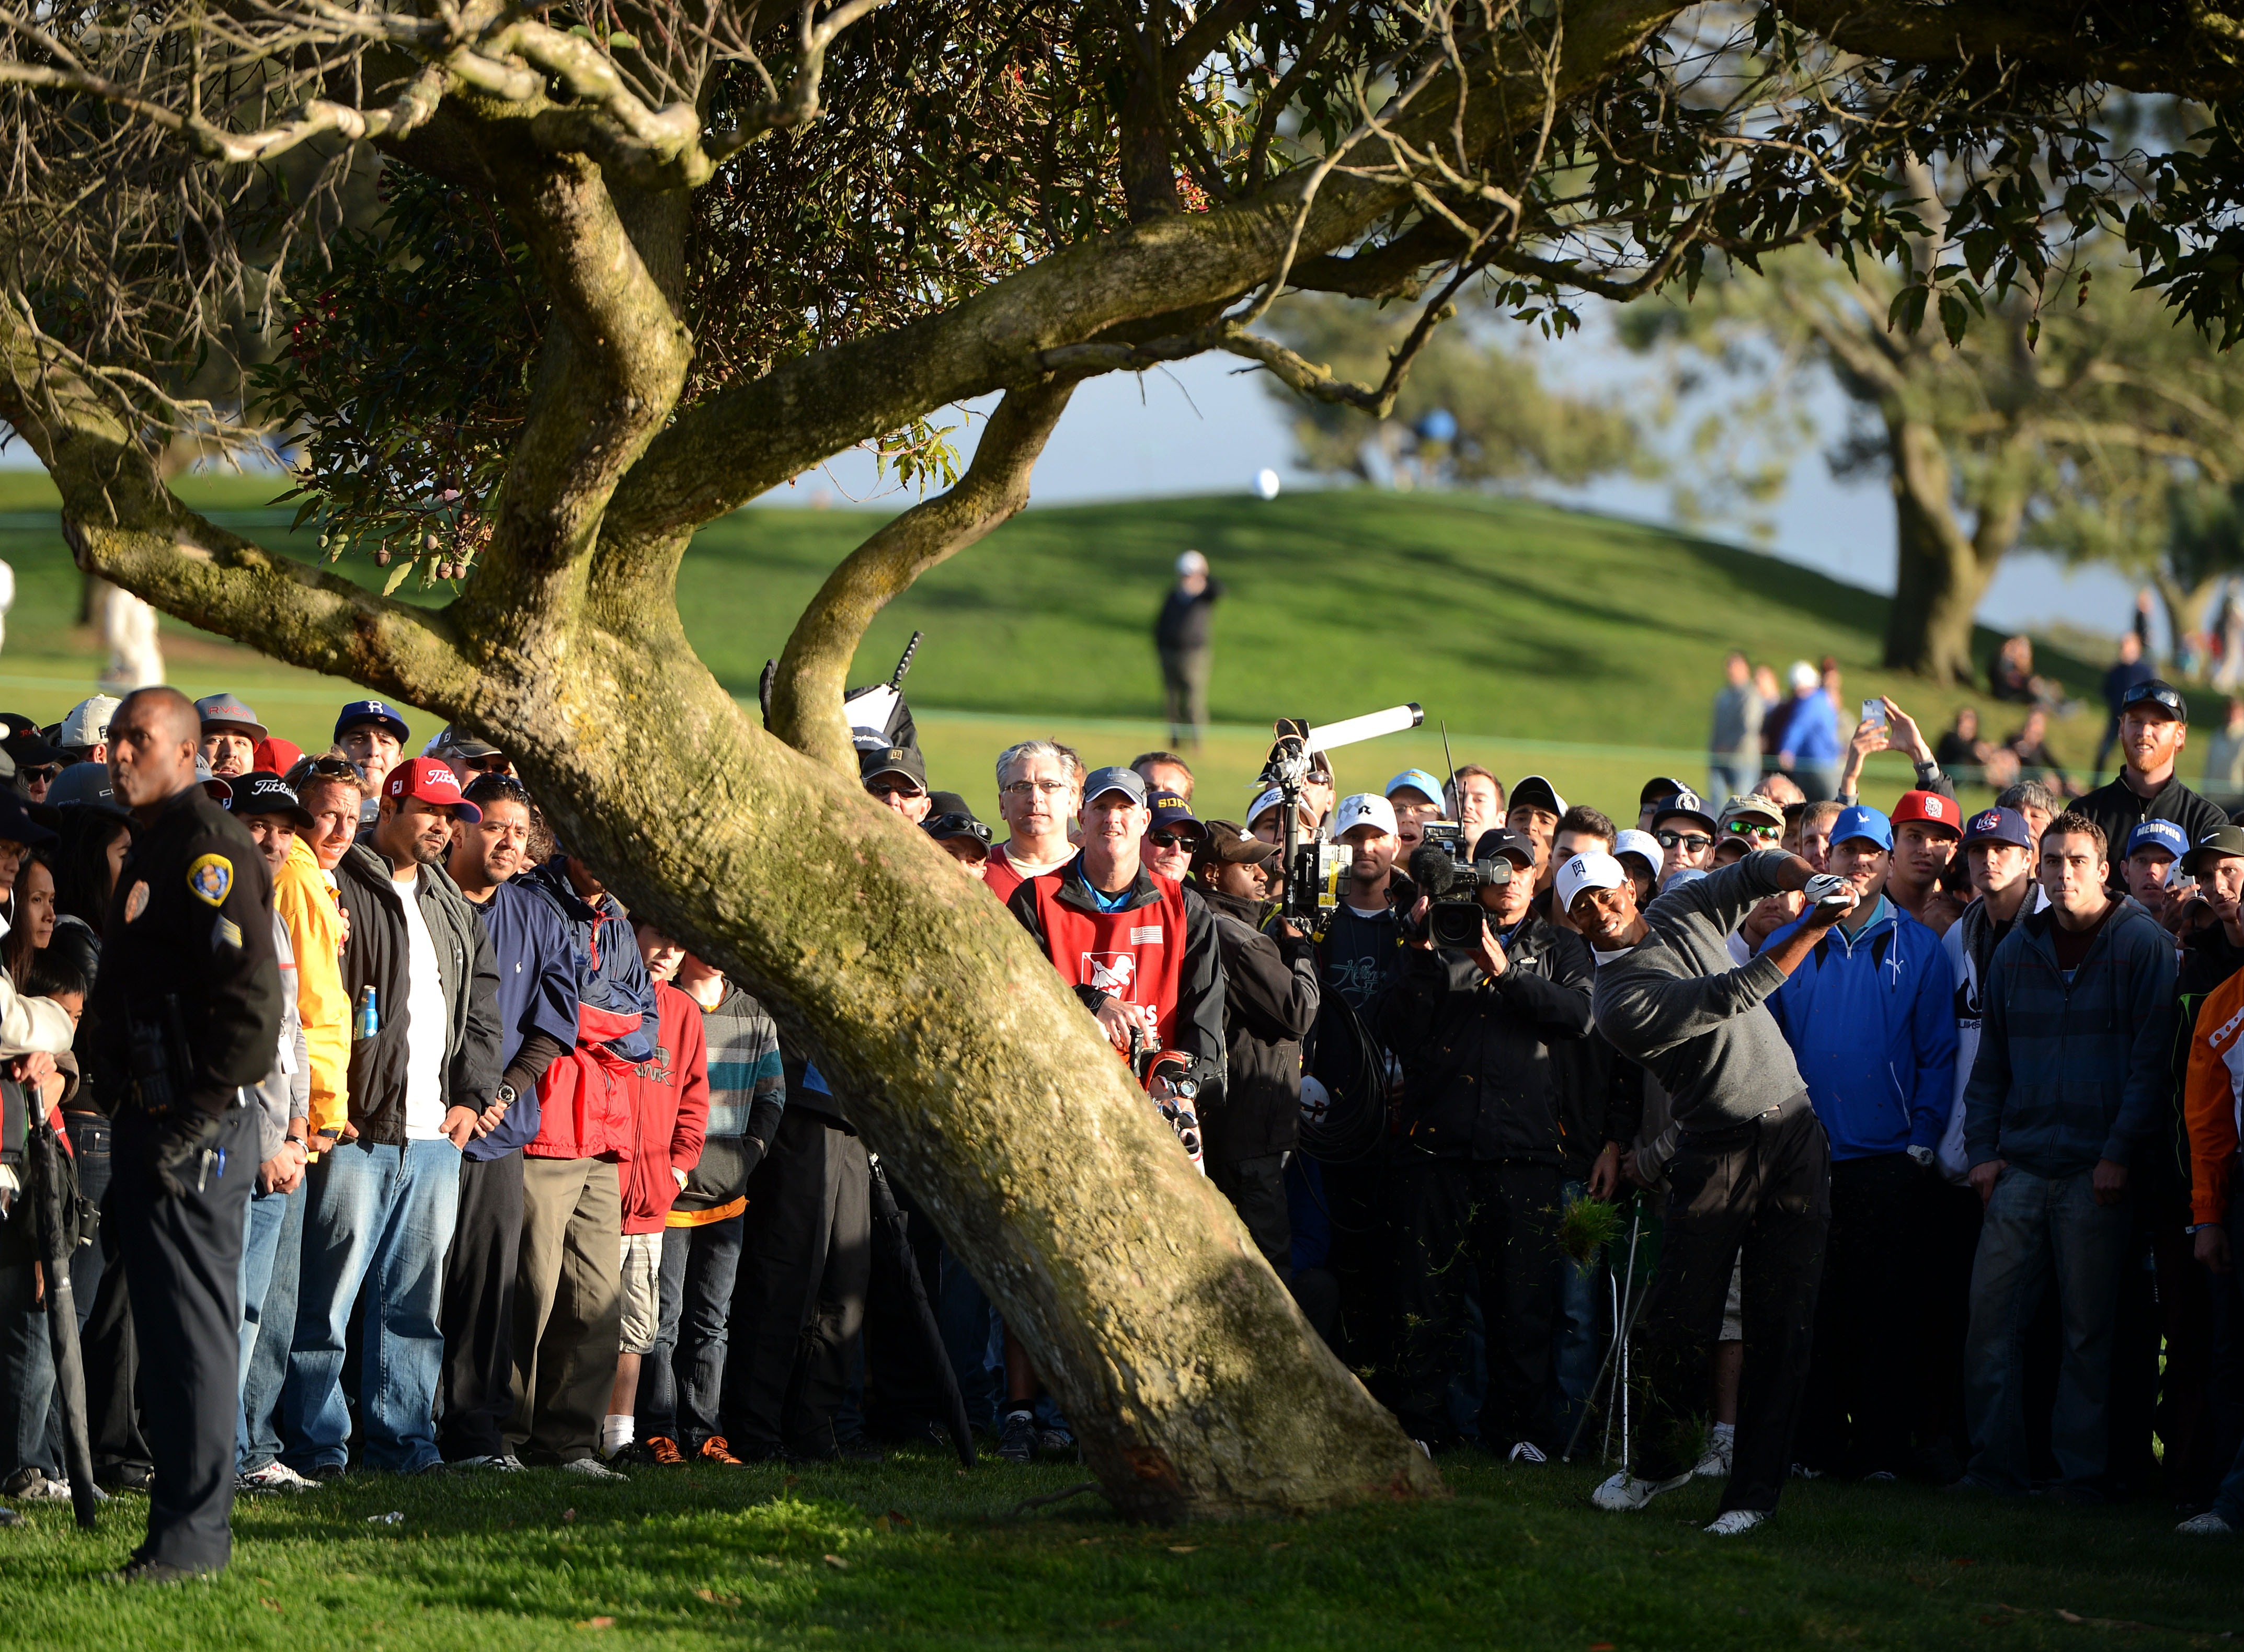 Tiger Woods bends a shot around a tree on the 4th hole during the Final Round at the Farmers Insurance Open at Torrey Pines. (Photo by Donald Miralle/Getty Images)